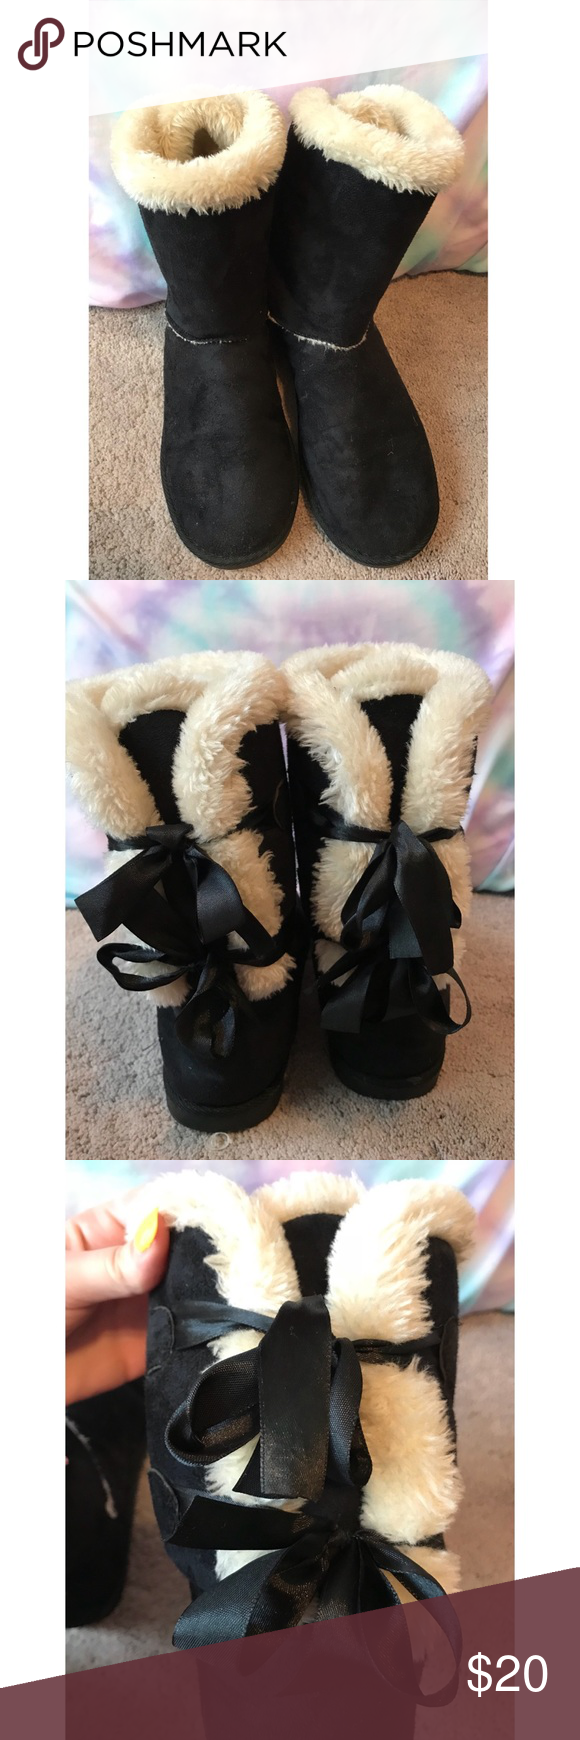 c130fc8b3fc Fuzzy Black Lace Up Boots Super cute black boots with fuzzy and soft ...